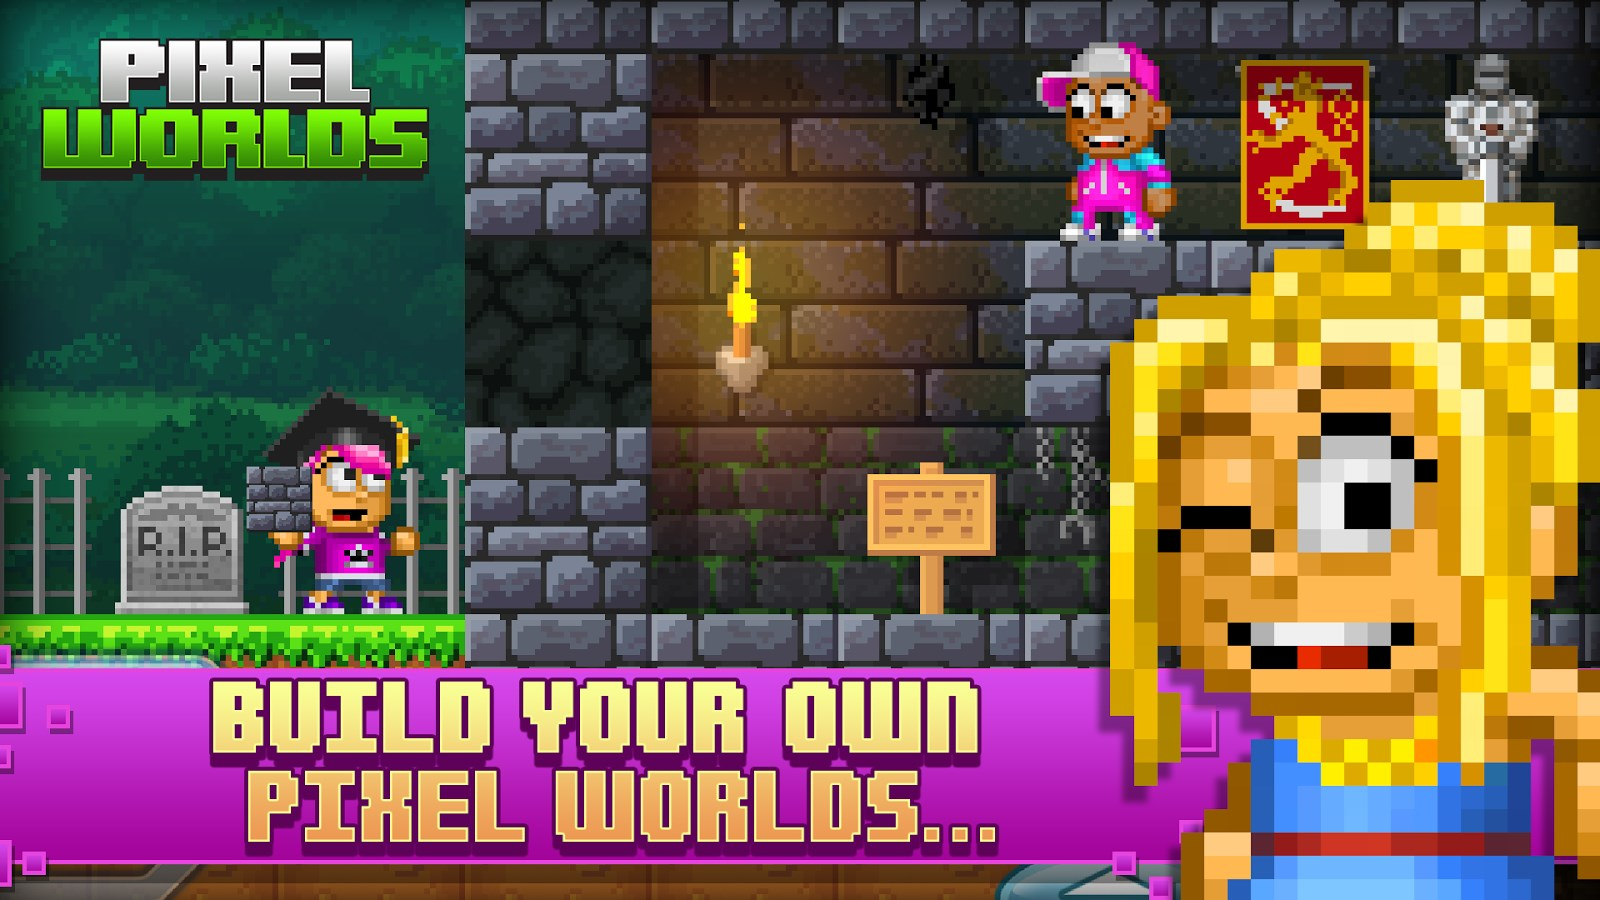 Pixel Worlds - Imagem 2 do software